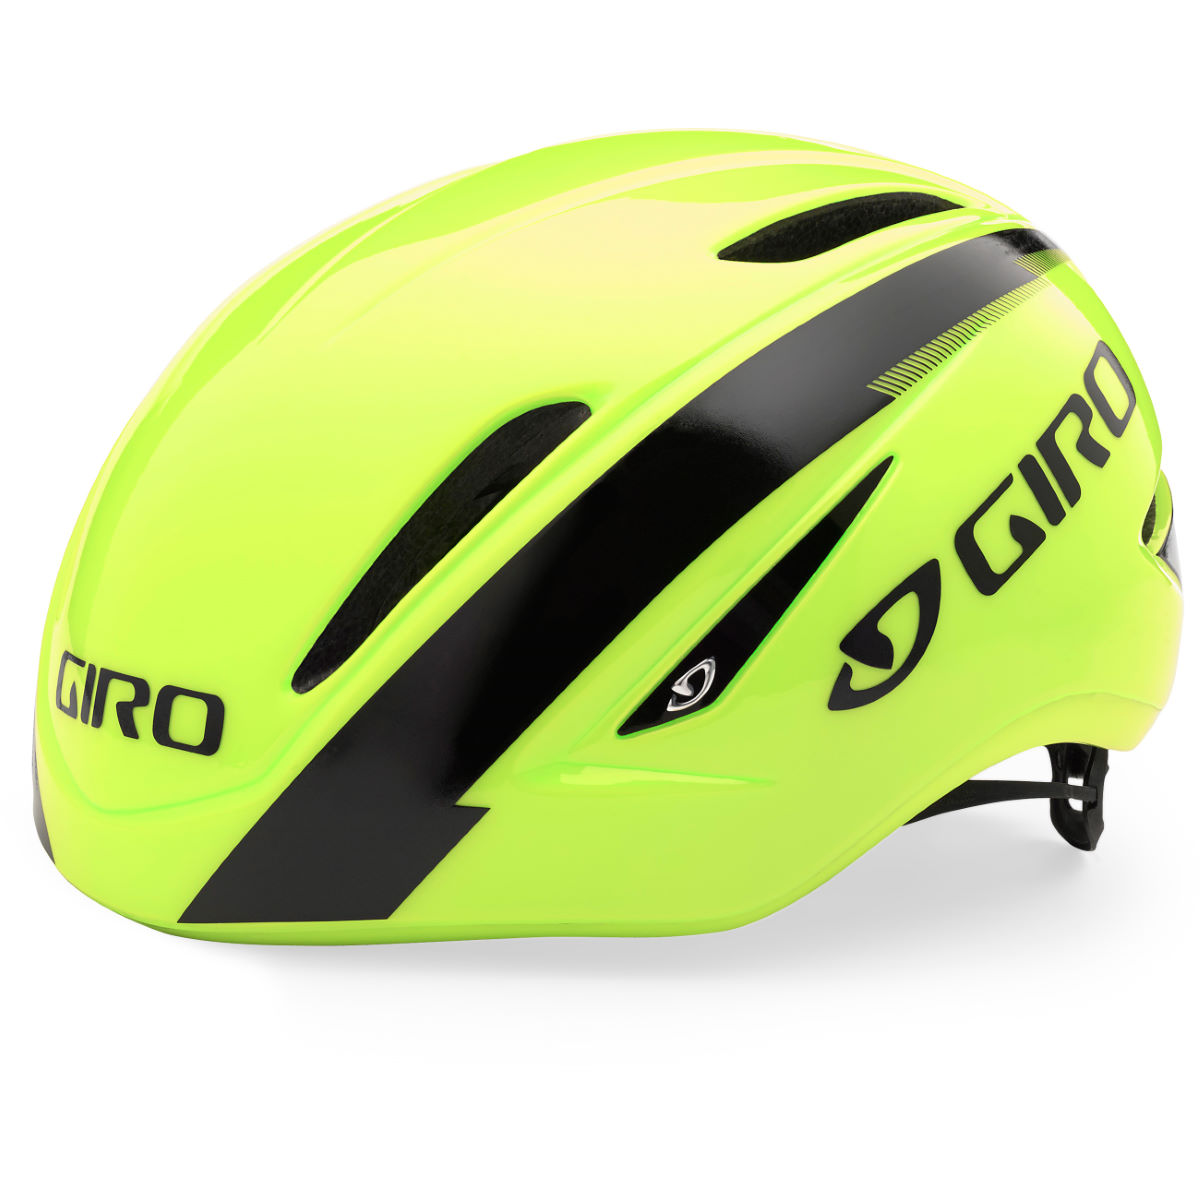 Casque de route Giro Air Attack - Small 51-55cm Jaune/Noir Casques de route